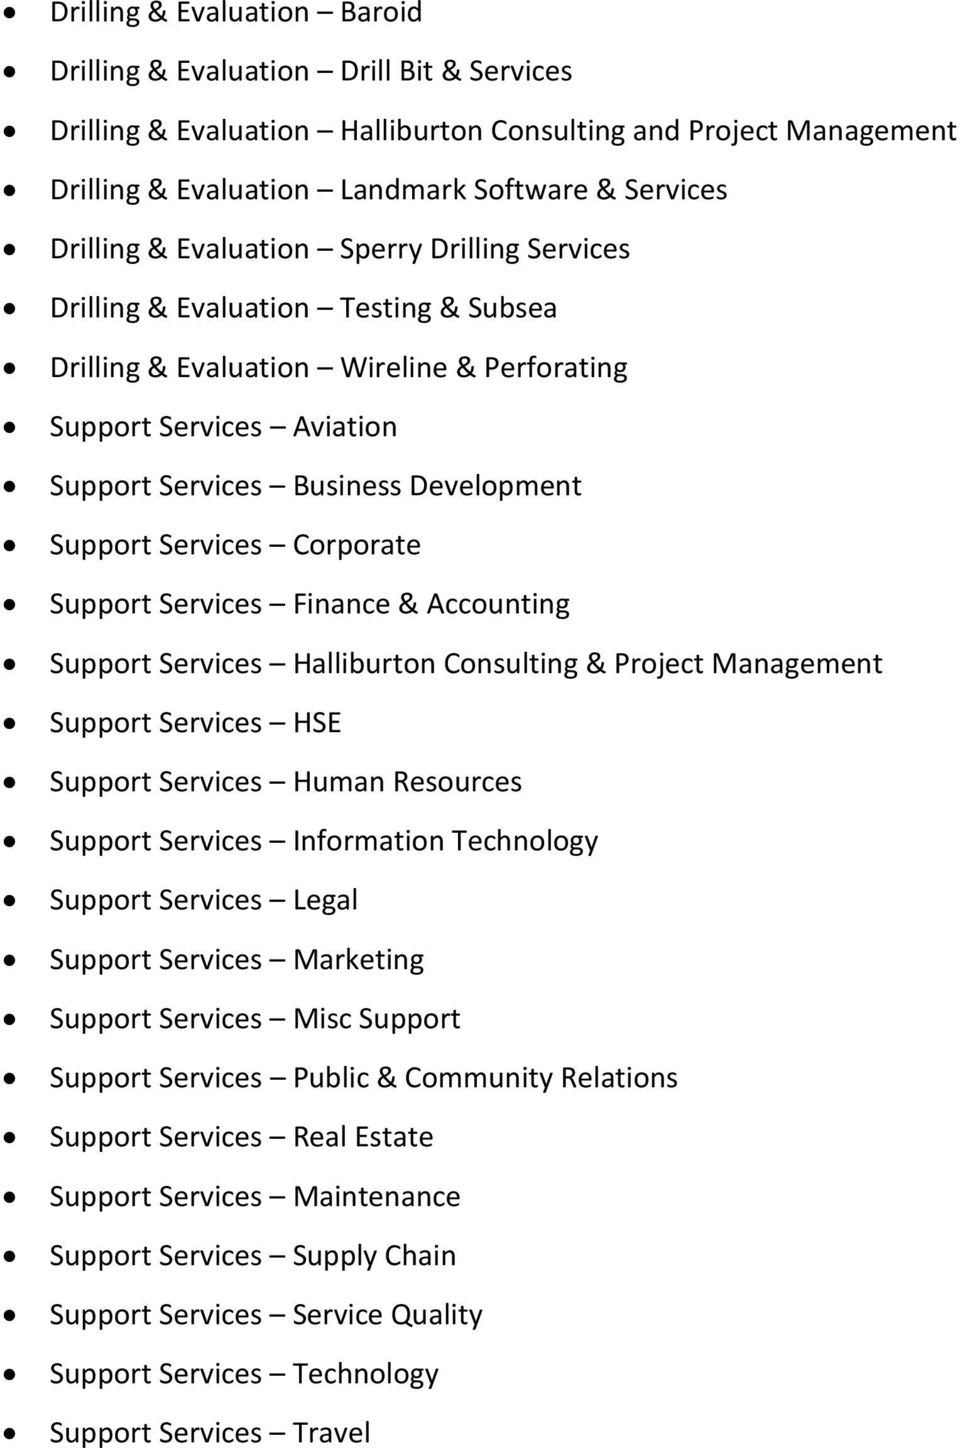 Services Corporate Support Services Finance & Accounting Support Services Halliburton Consulting & Project Management Support Services HSE Support Services Human Resources Support Services